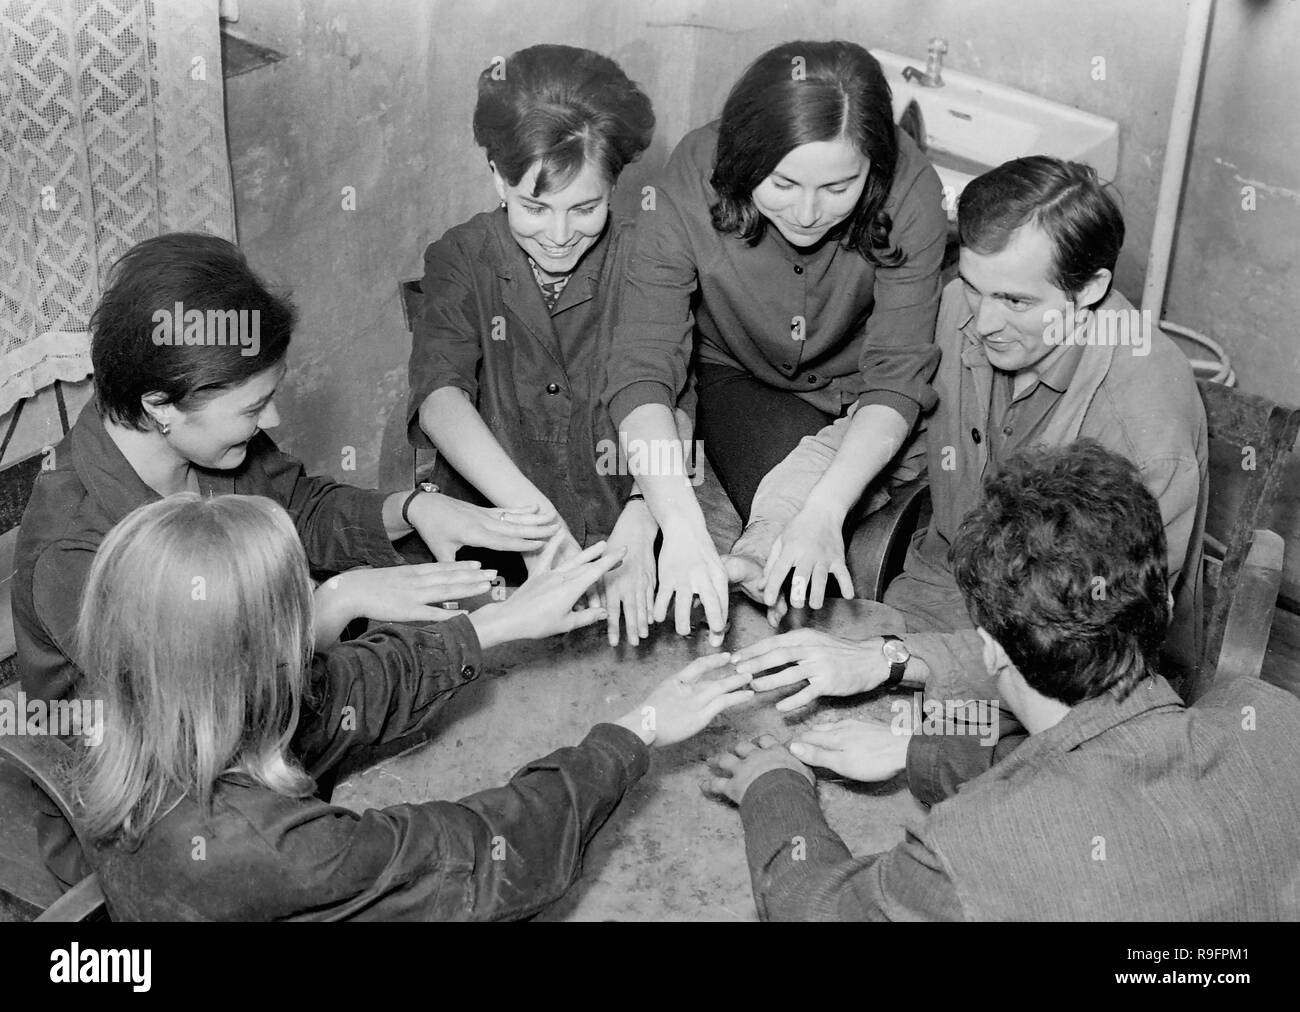 A group of young adults appear to play a parlor game or participate in a seance, ca. 1955. - Stock Image